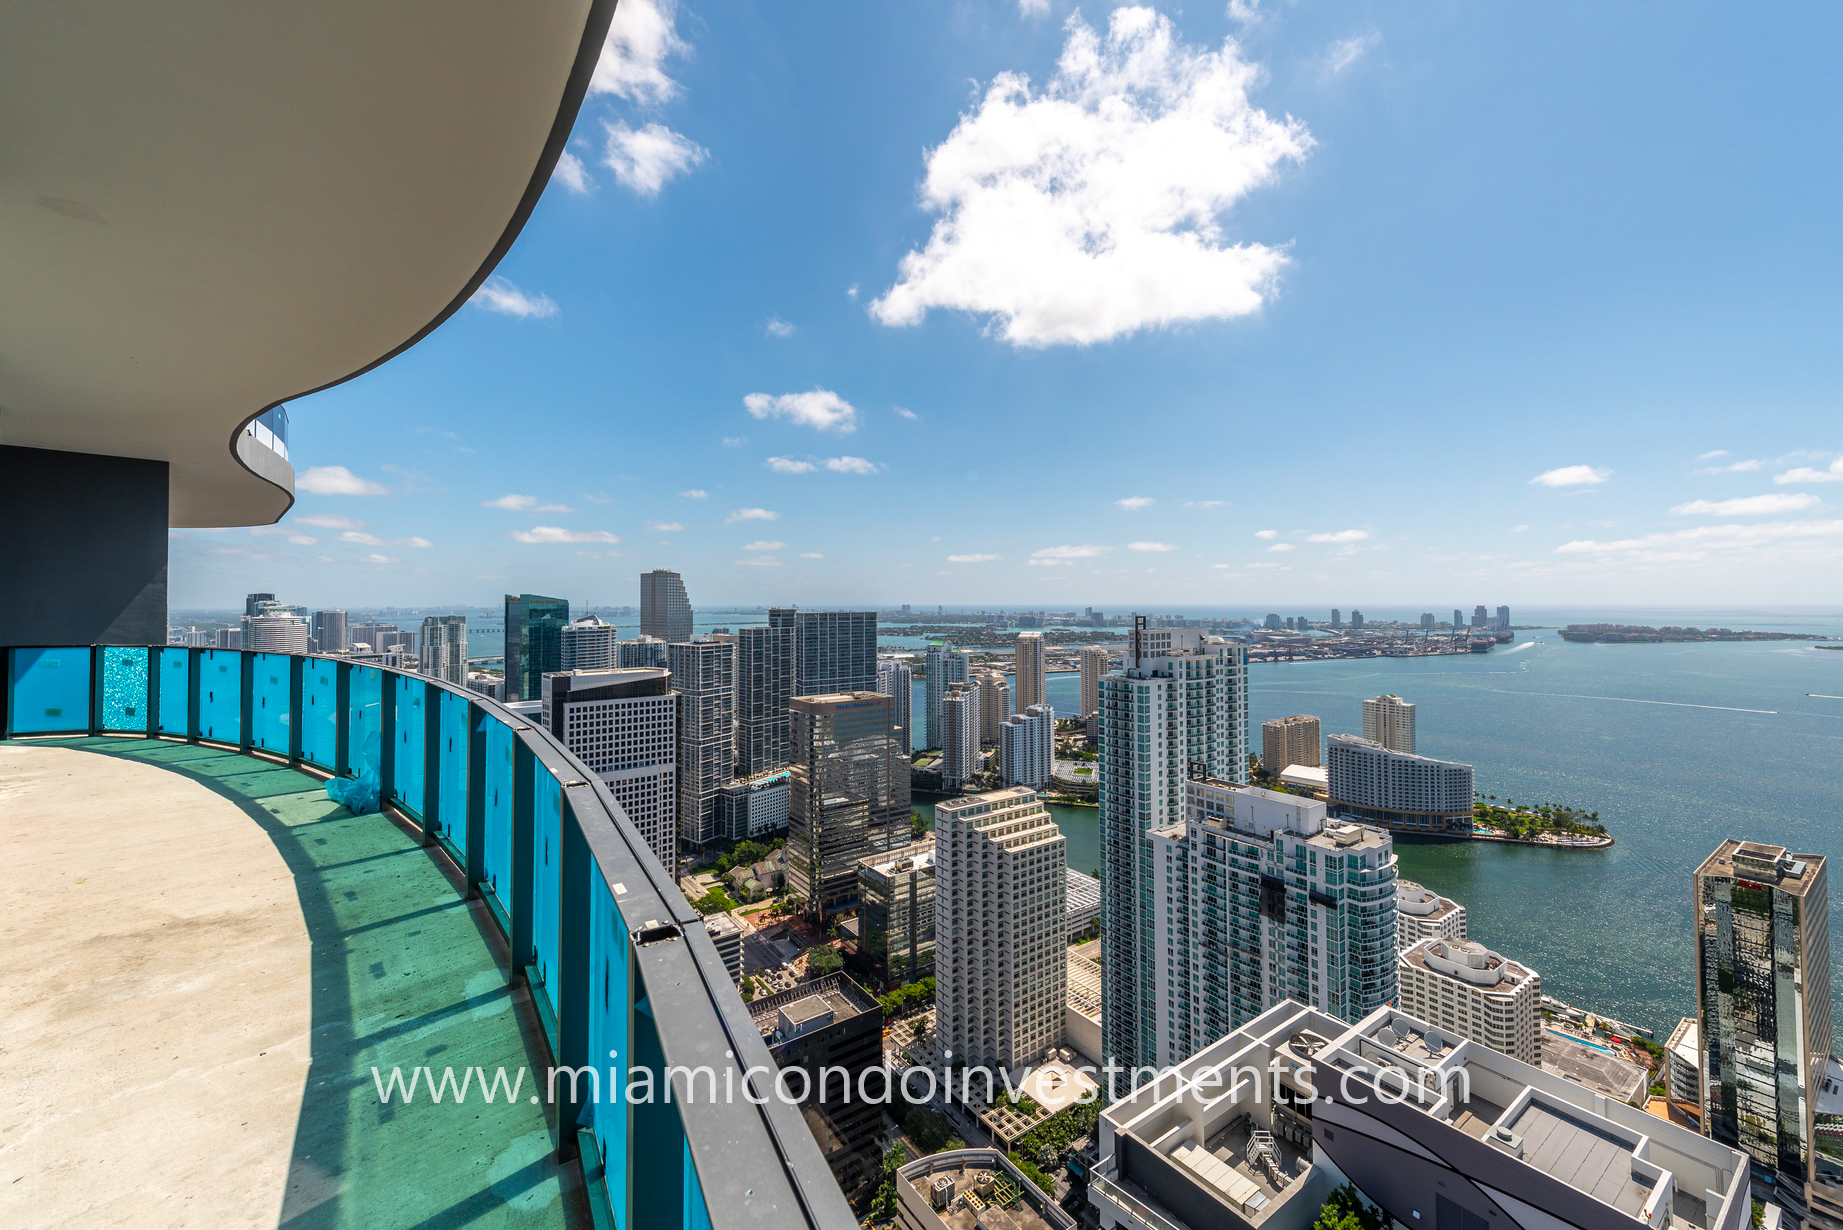 views from 63rd floor of Brickell Flatiron